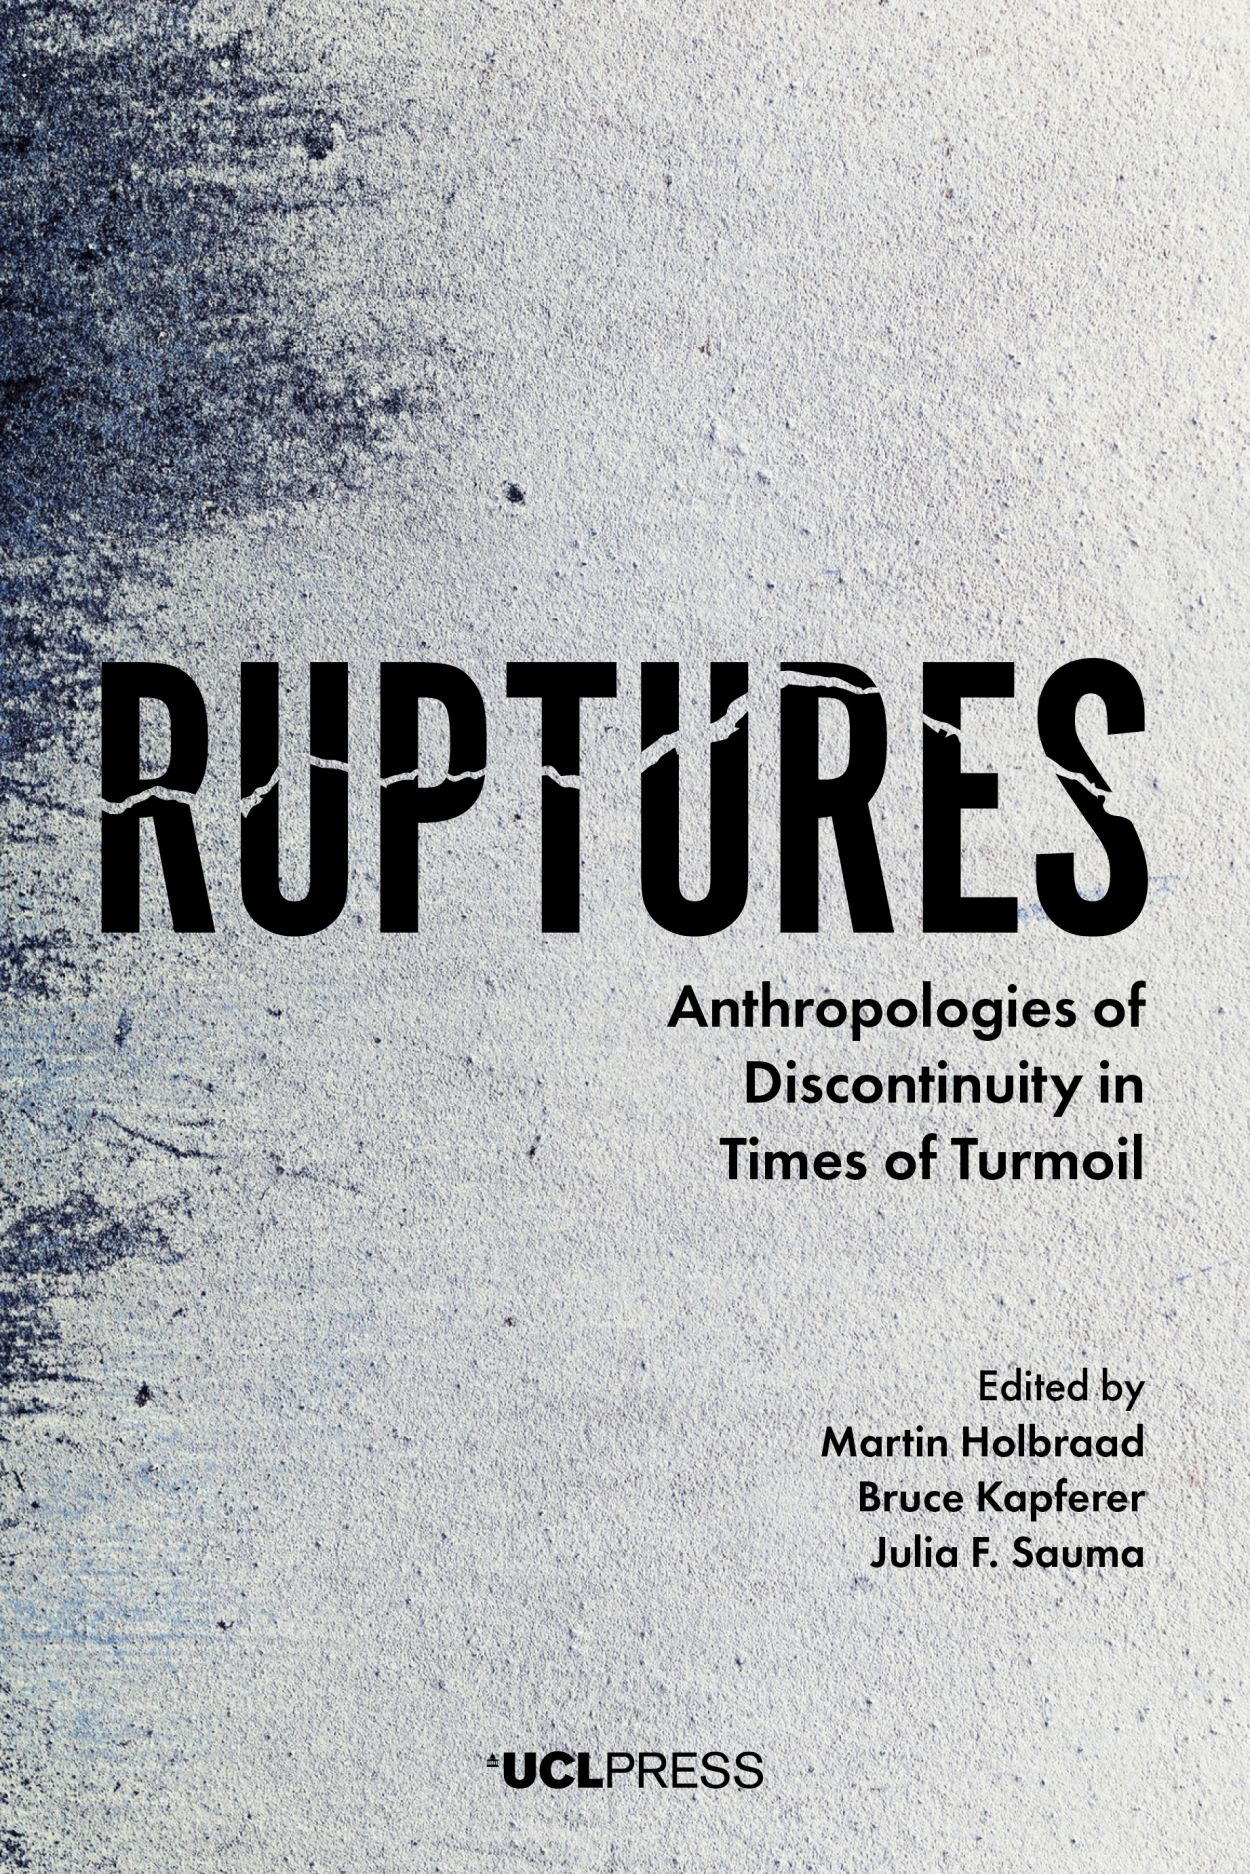 Ruptures: Anthropologies of Discontinuity in Times of Turmoil